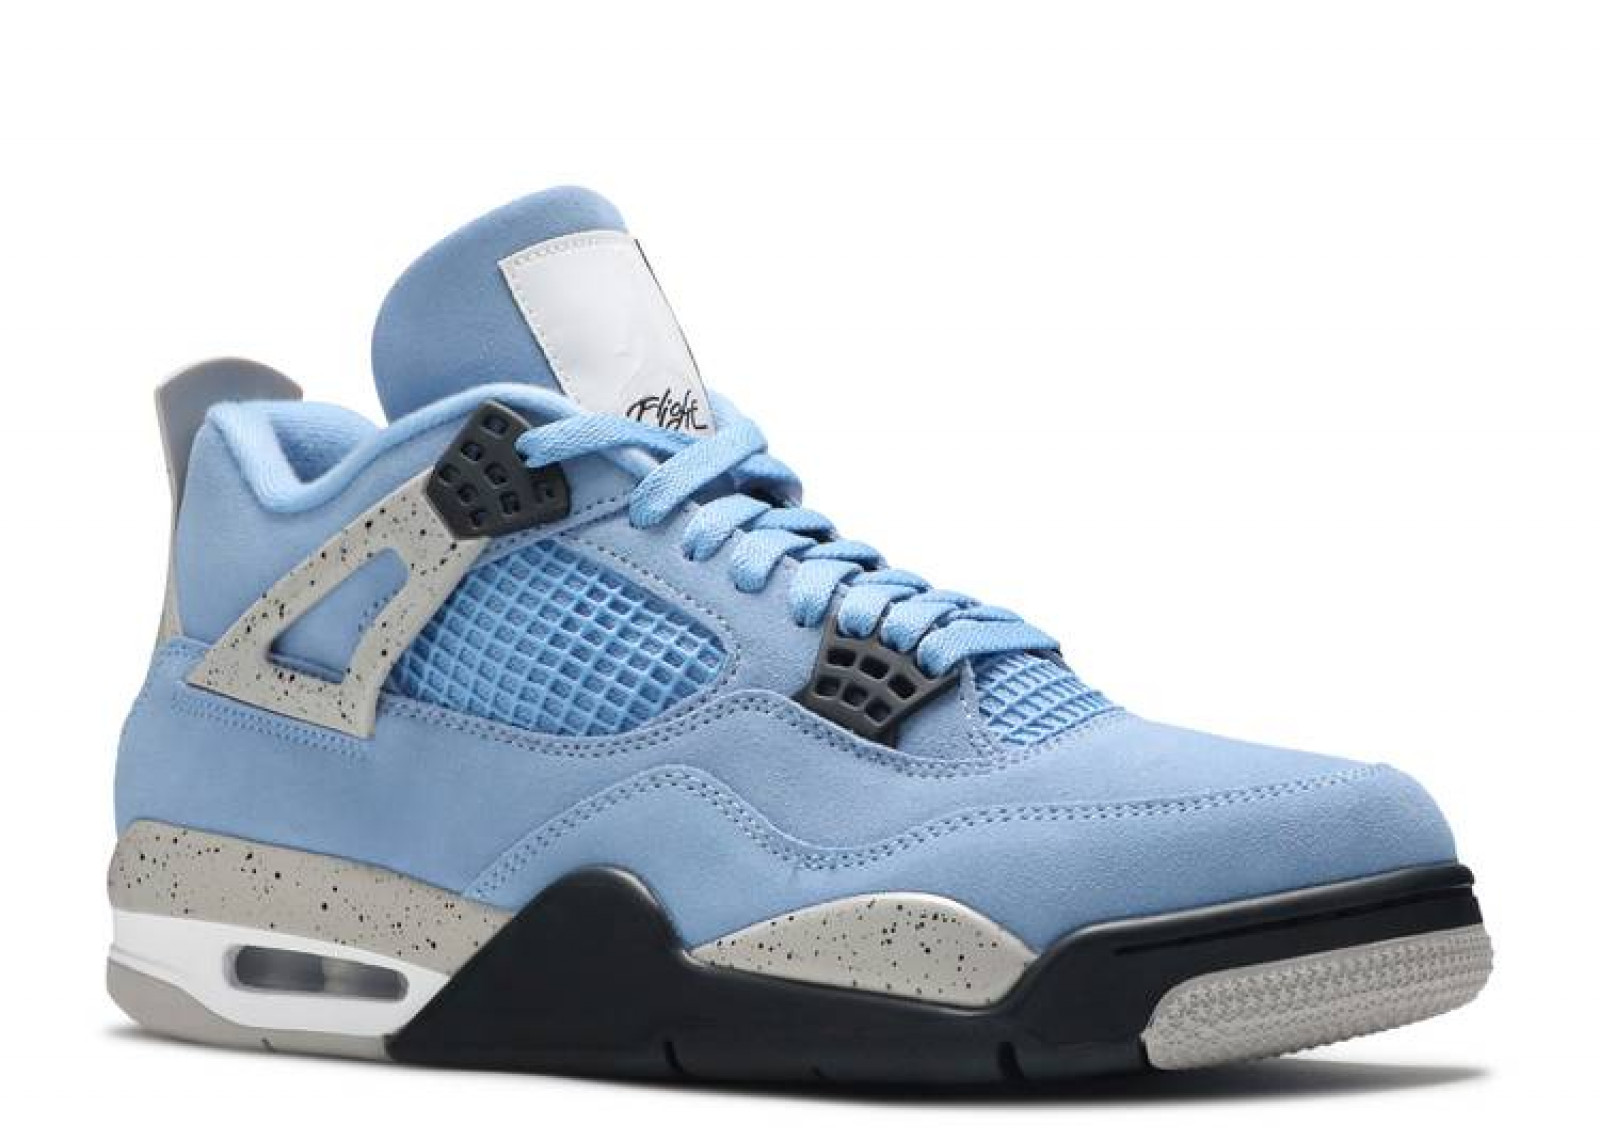 AIR JORDAN 4 RETRO UNIVERSITY BLUE image 2